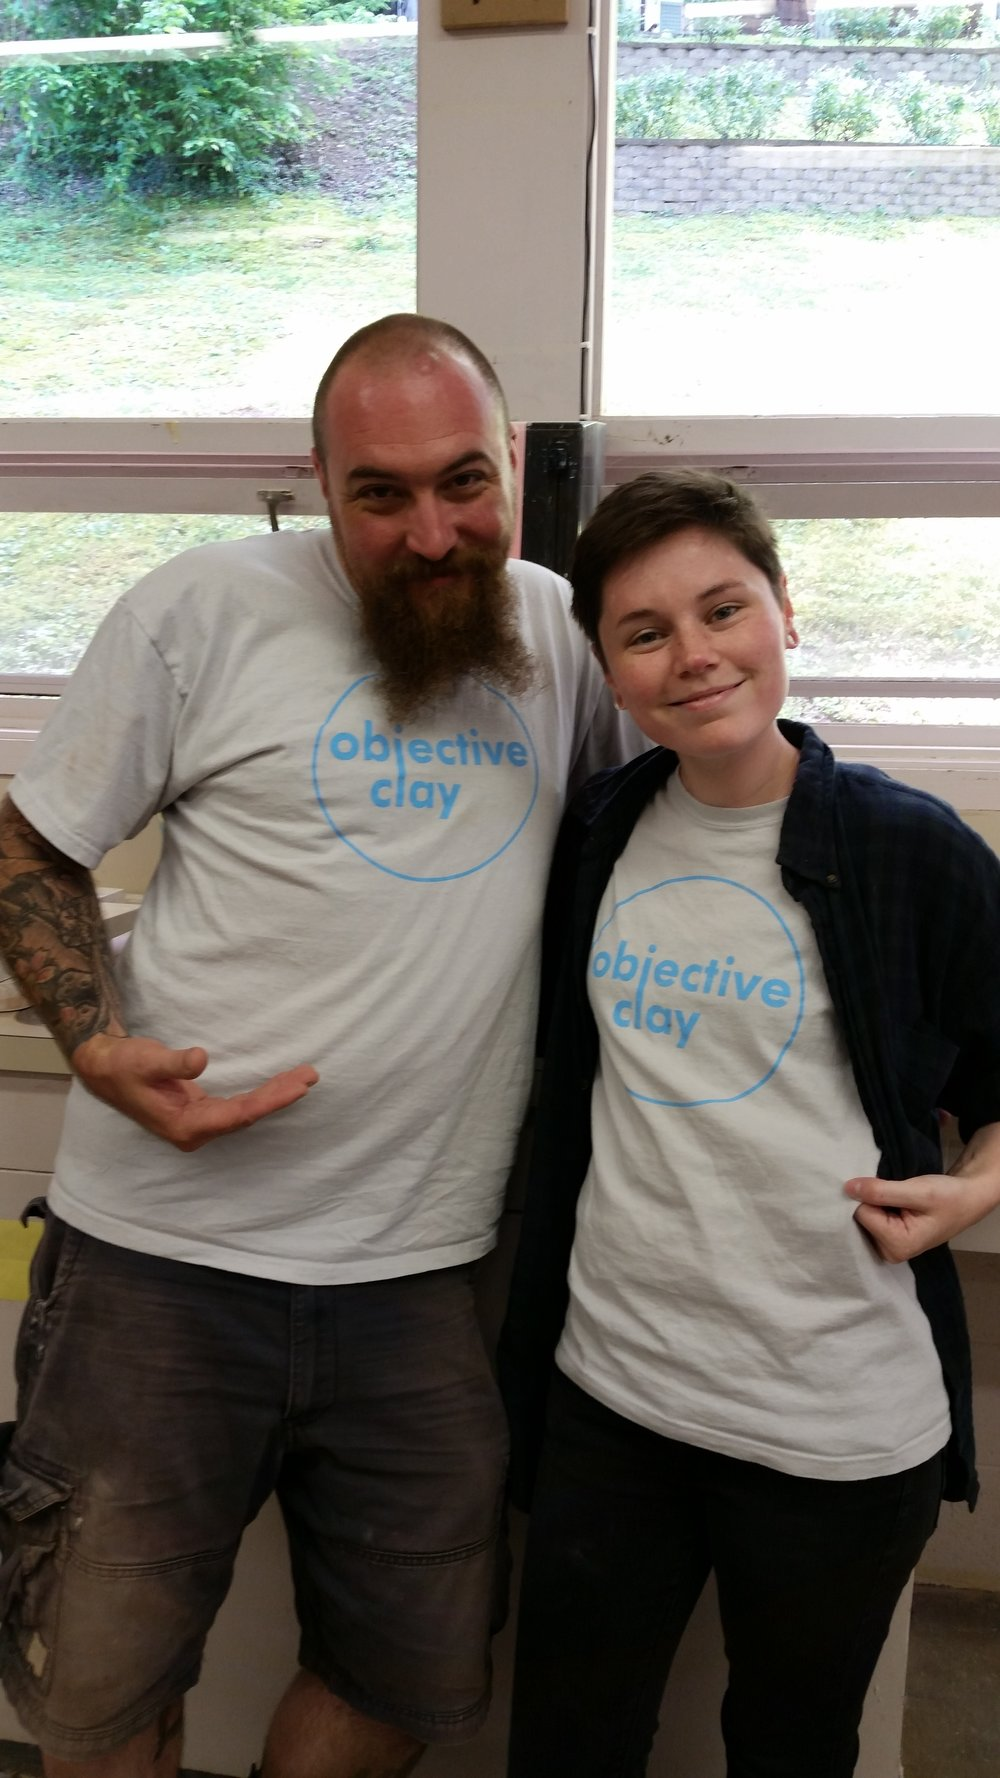 Student Candice Gooch-Ward and Blair Clemo showing off their Objective Clay T-shirts during a 2014 Summer Workshop at Arrowmont.